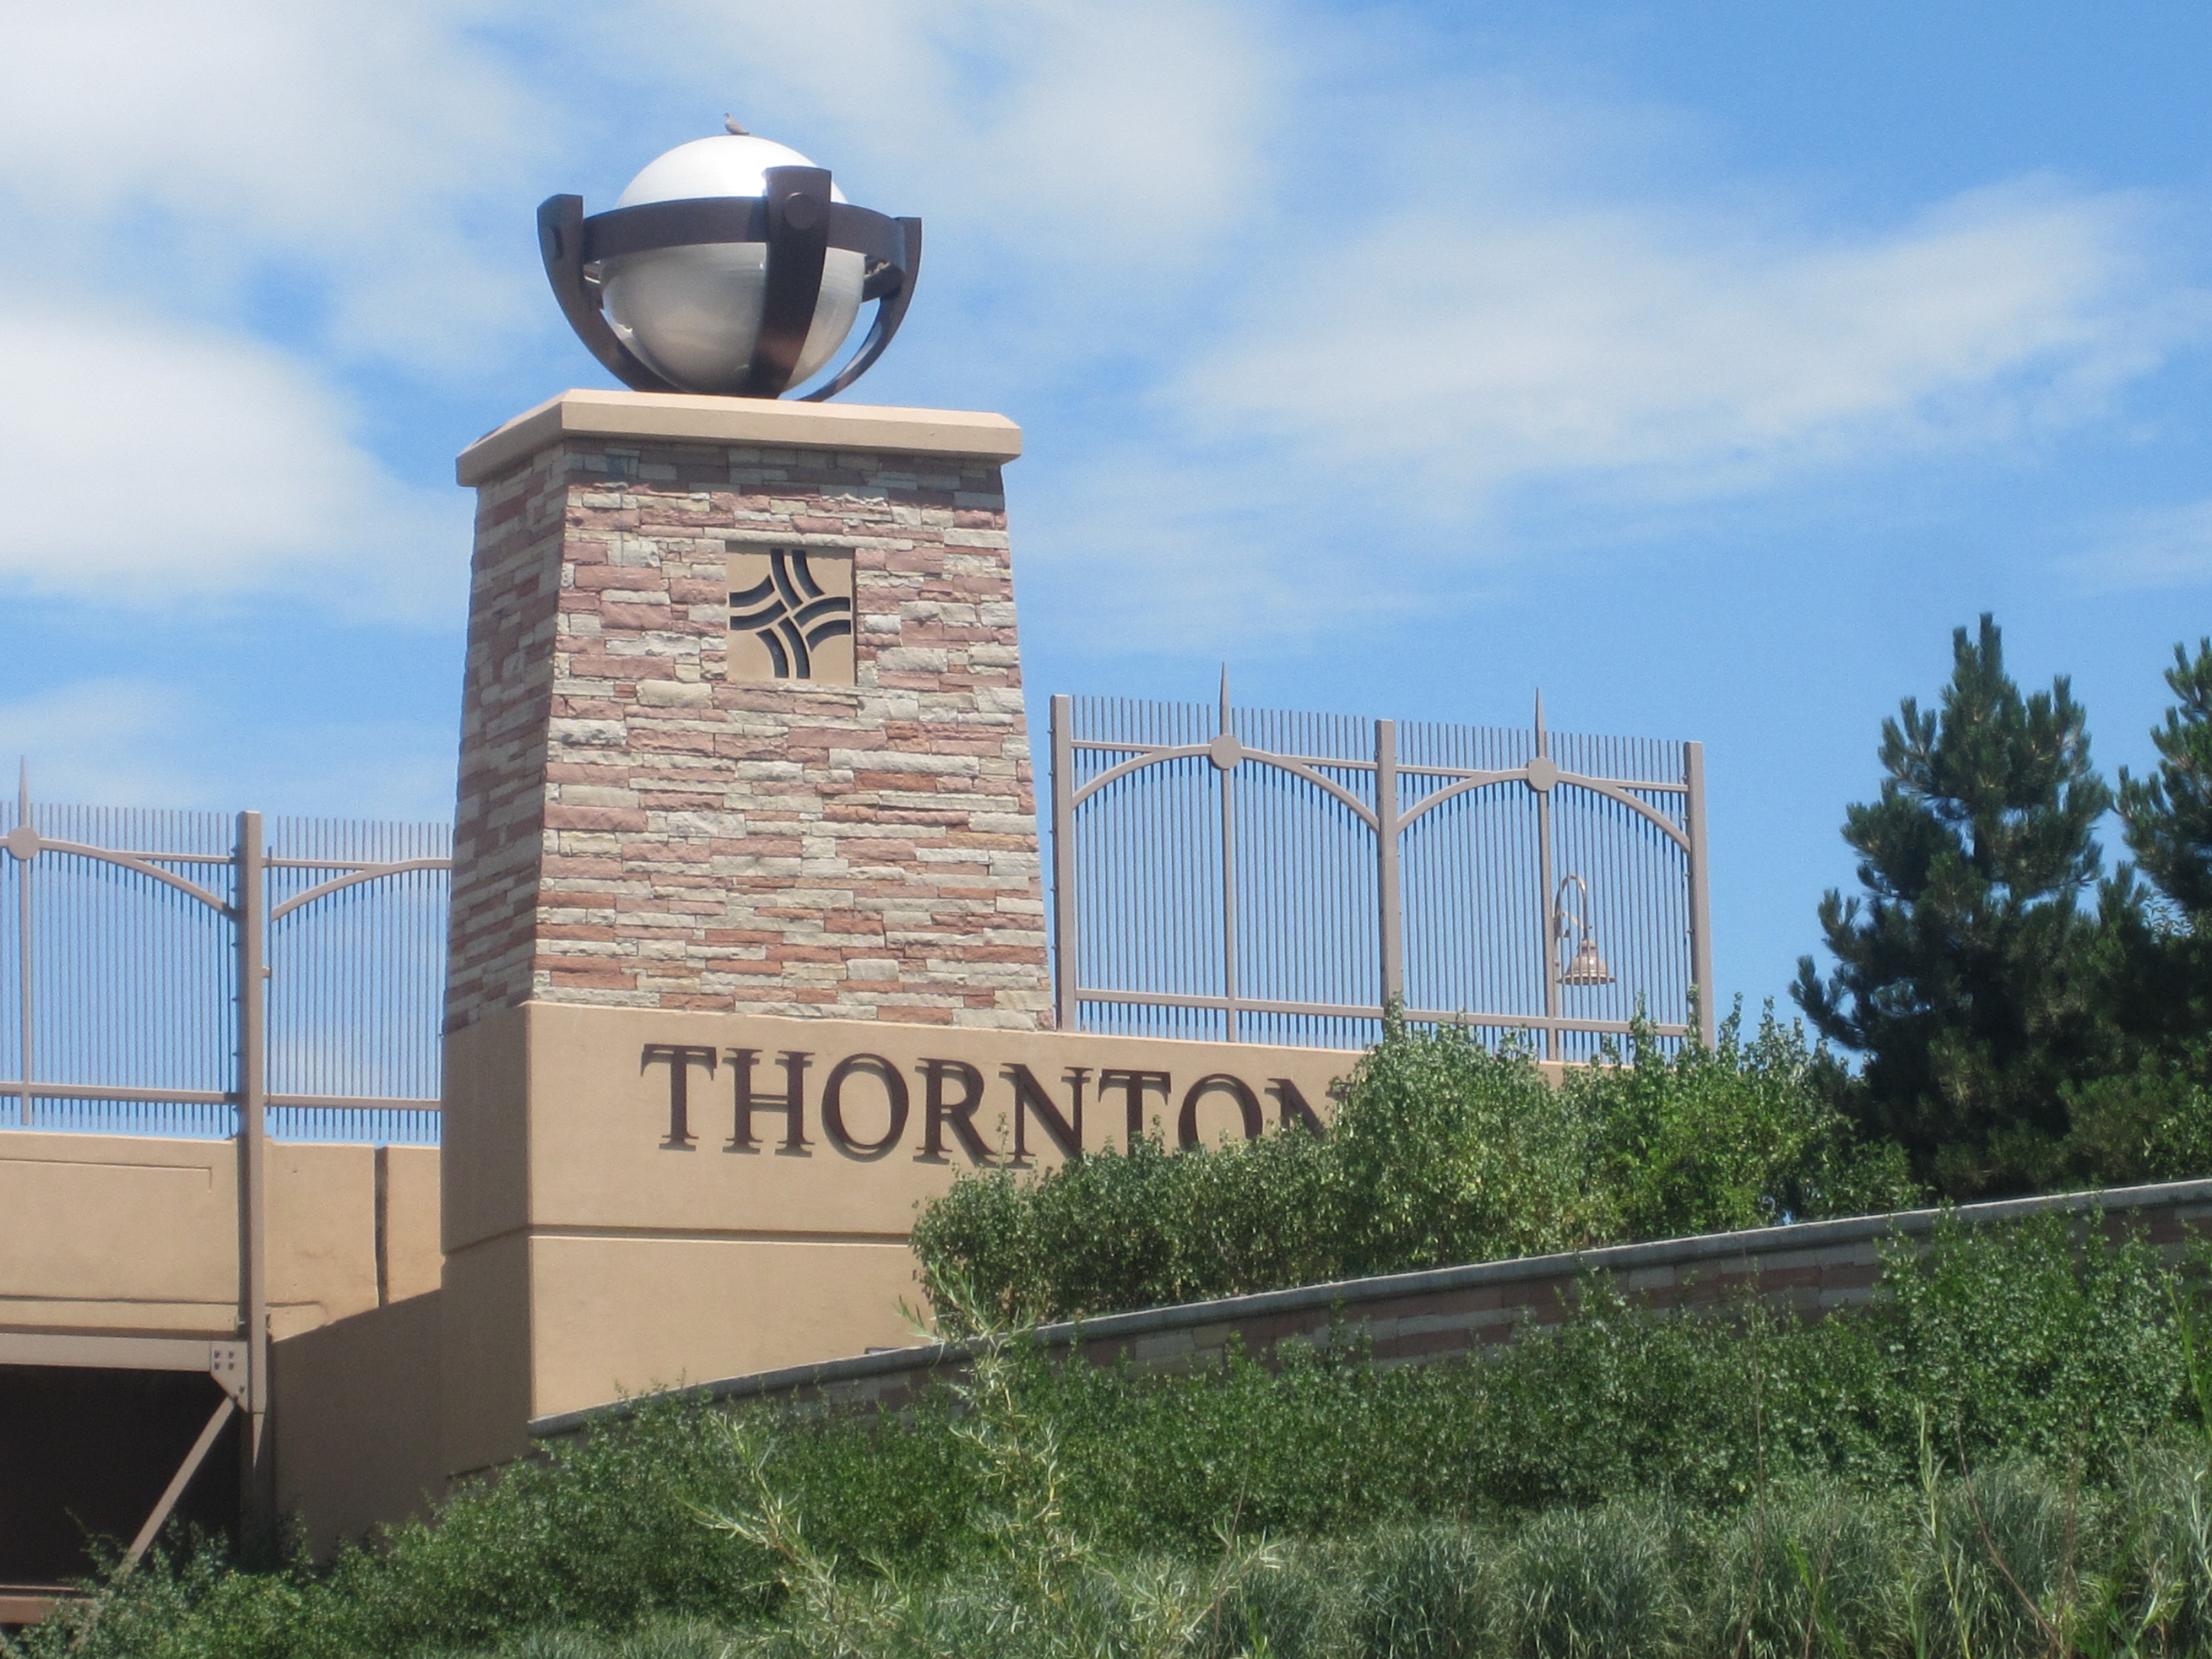 thornton colorado